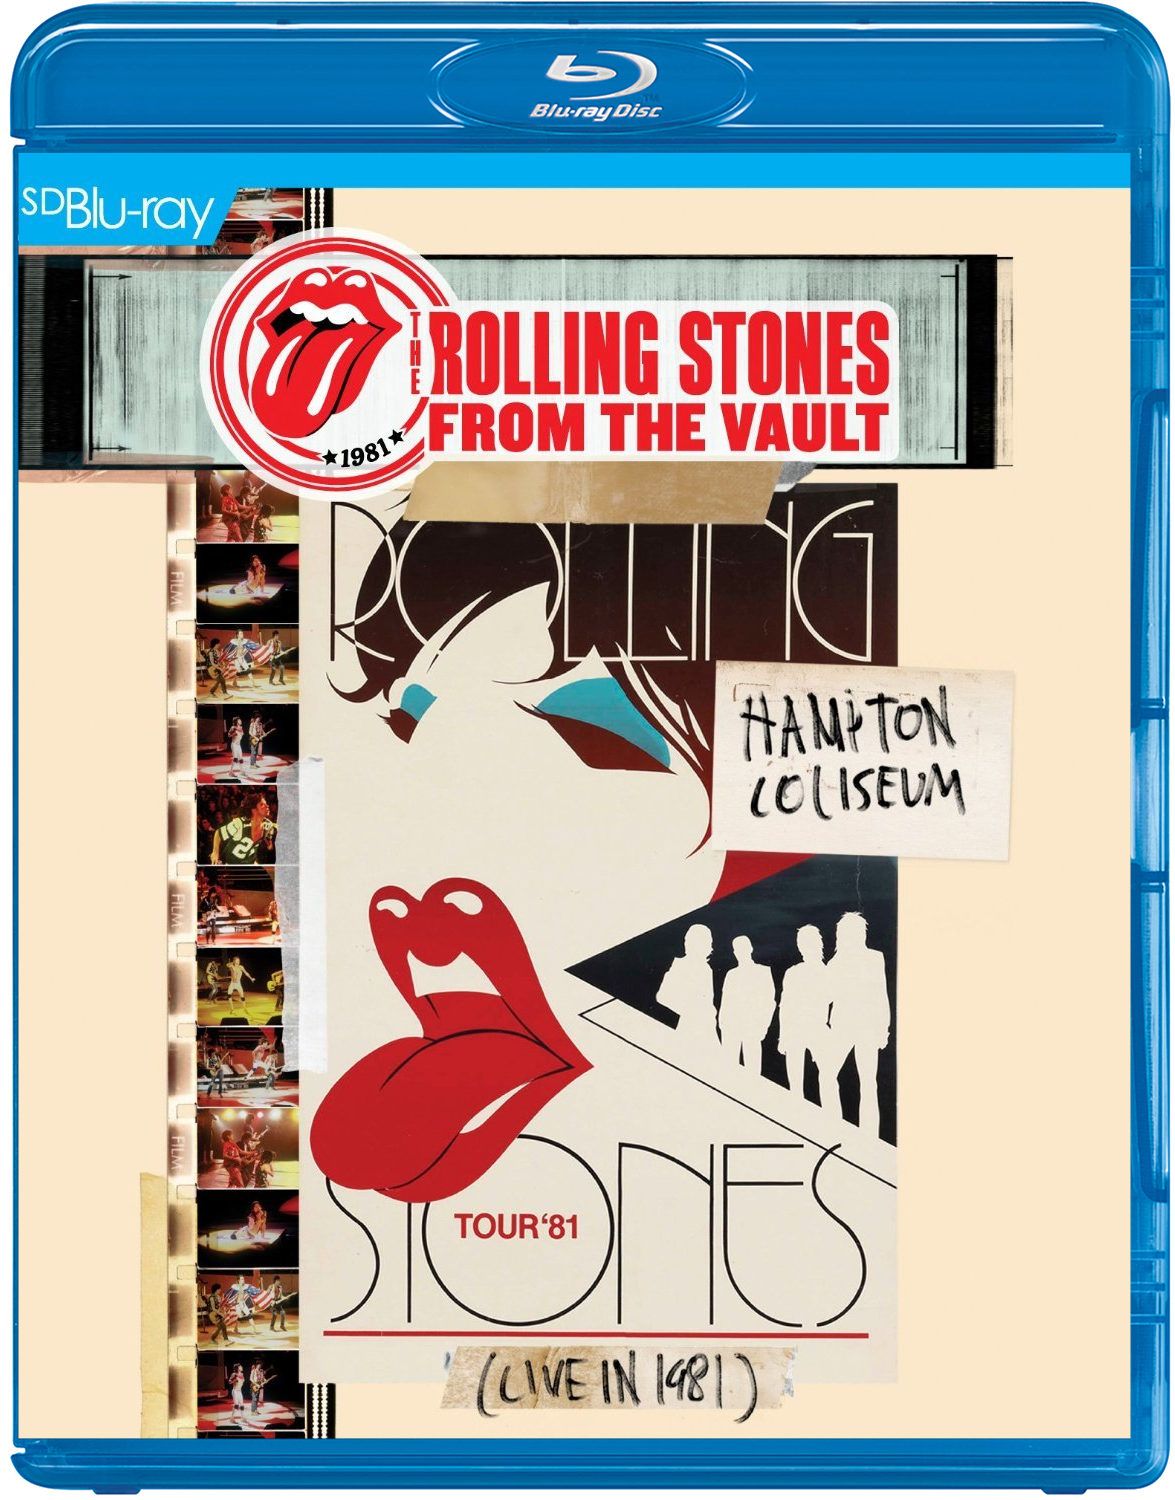 Rolling Stones From The Vault - Hampton Coliseum - Live In 1981 on Blu-ray image